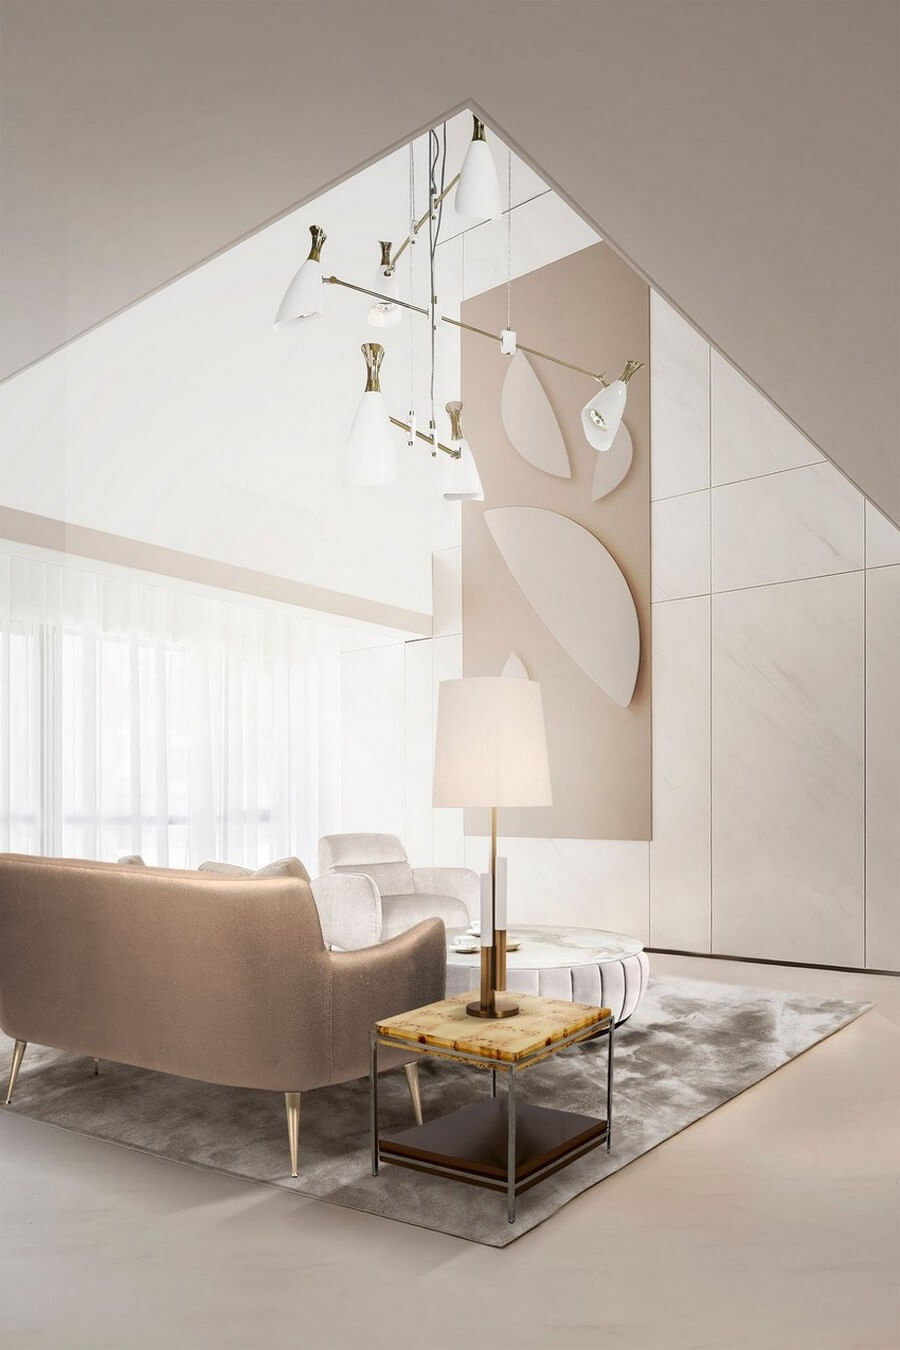 CAFFE LATTE HOME: DISCOVER THE BEST SELLERS OF MODERN DESIGN